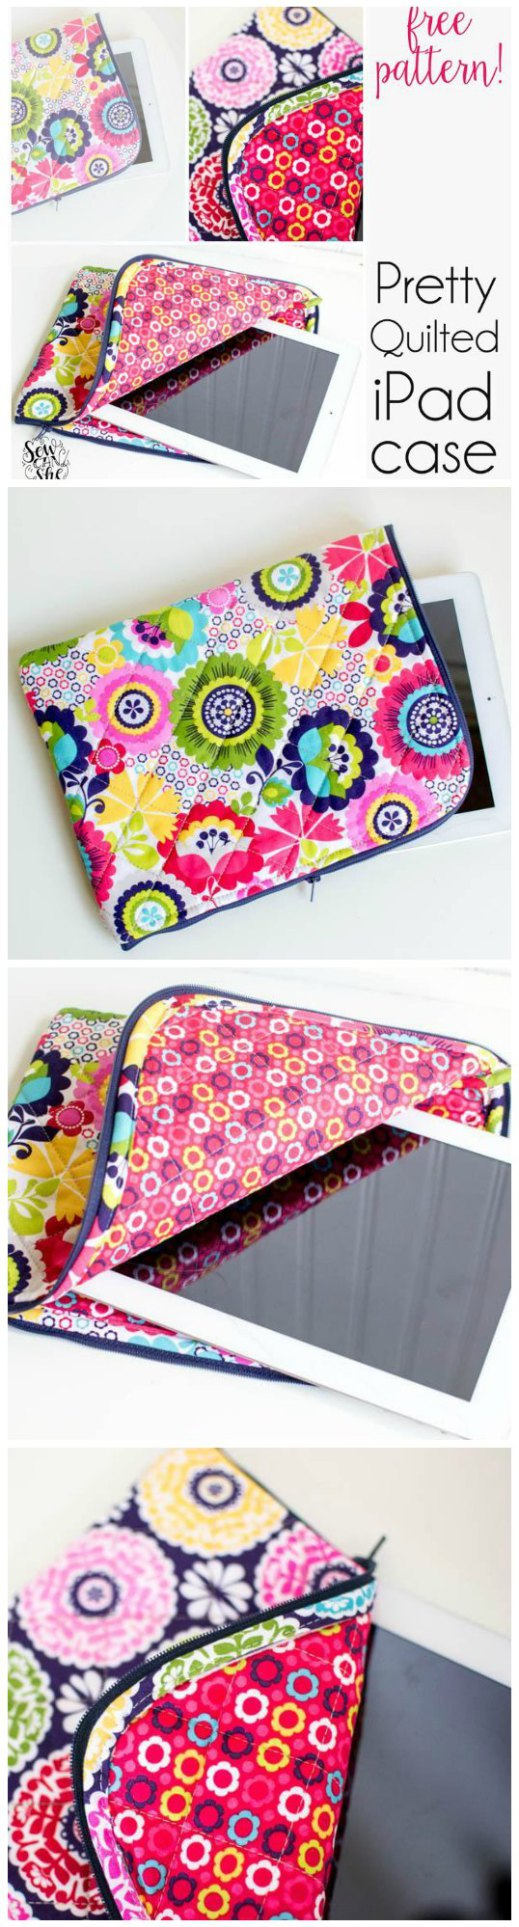 Pretty quilted IPad case - free pattern | Nähen